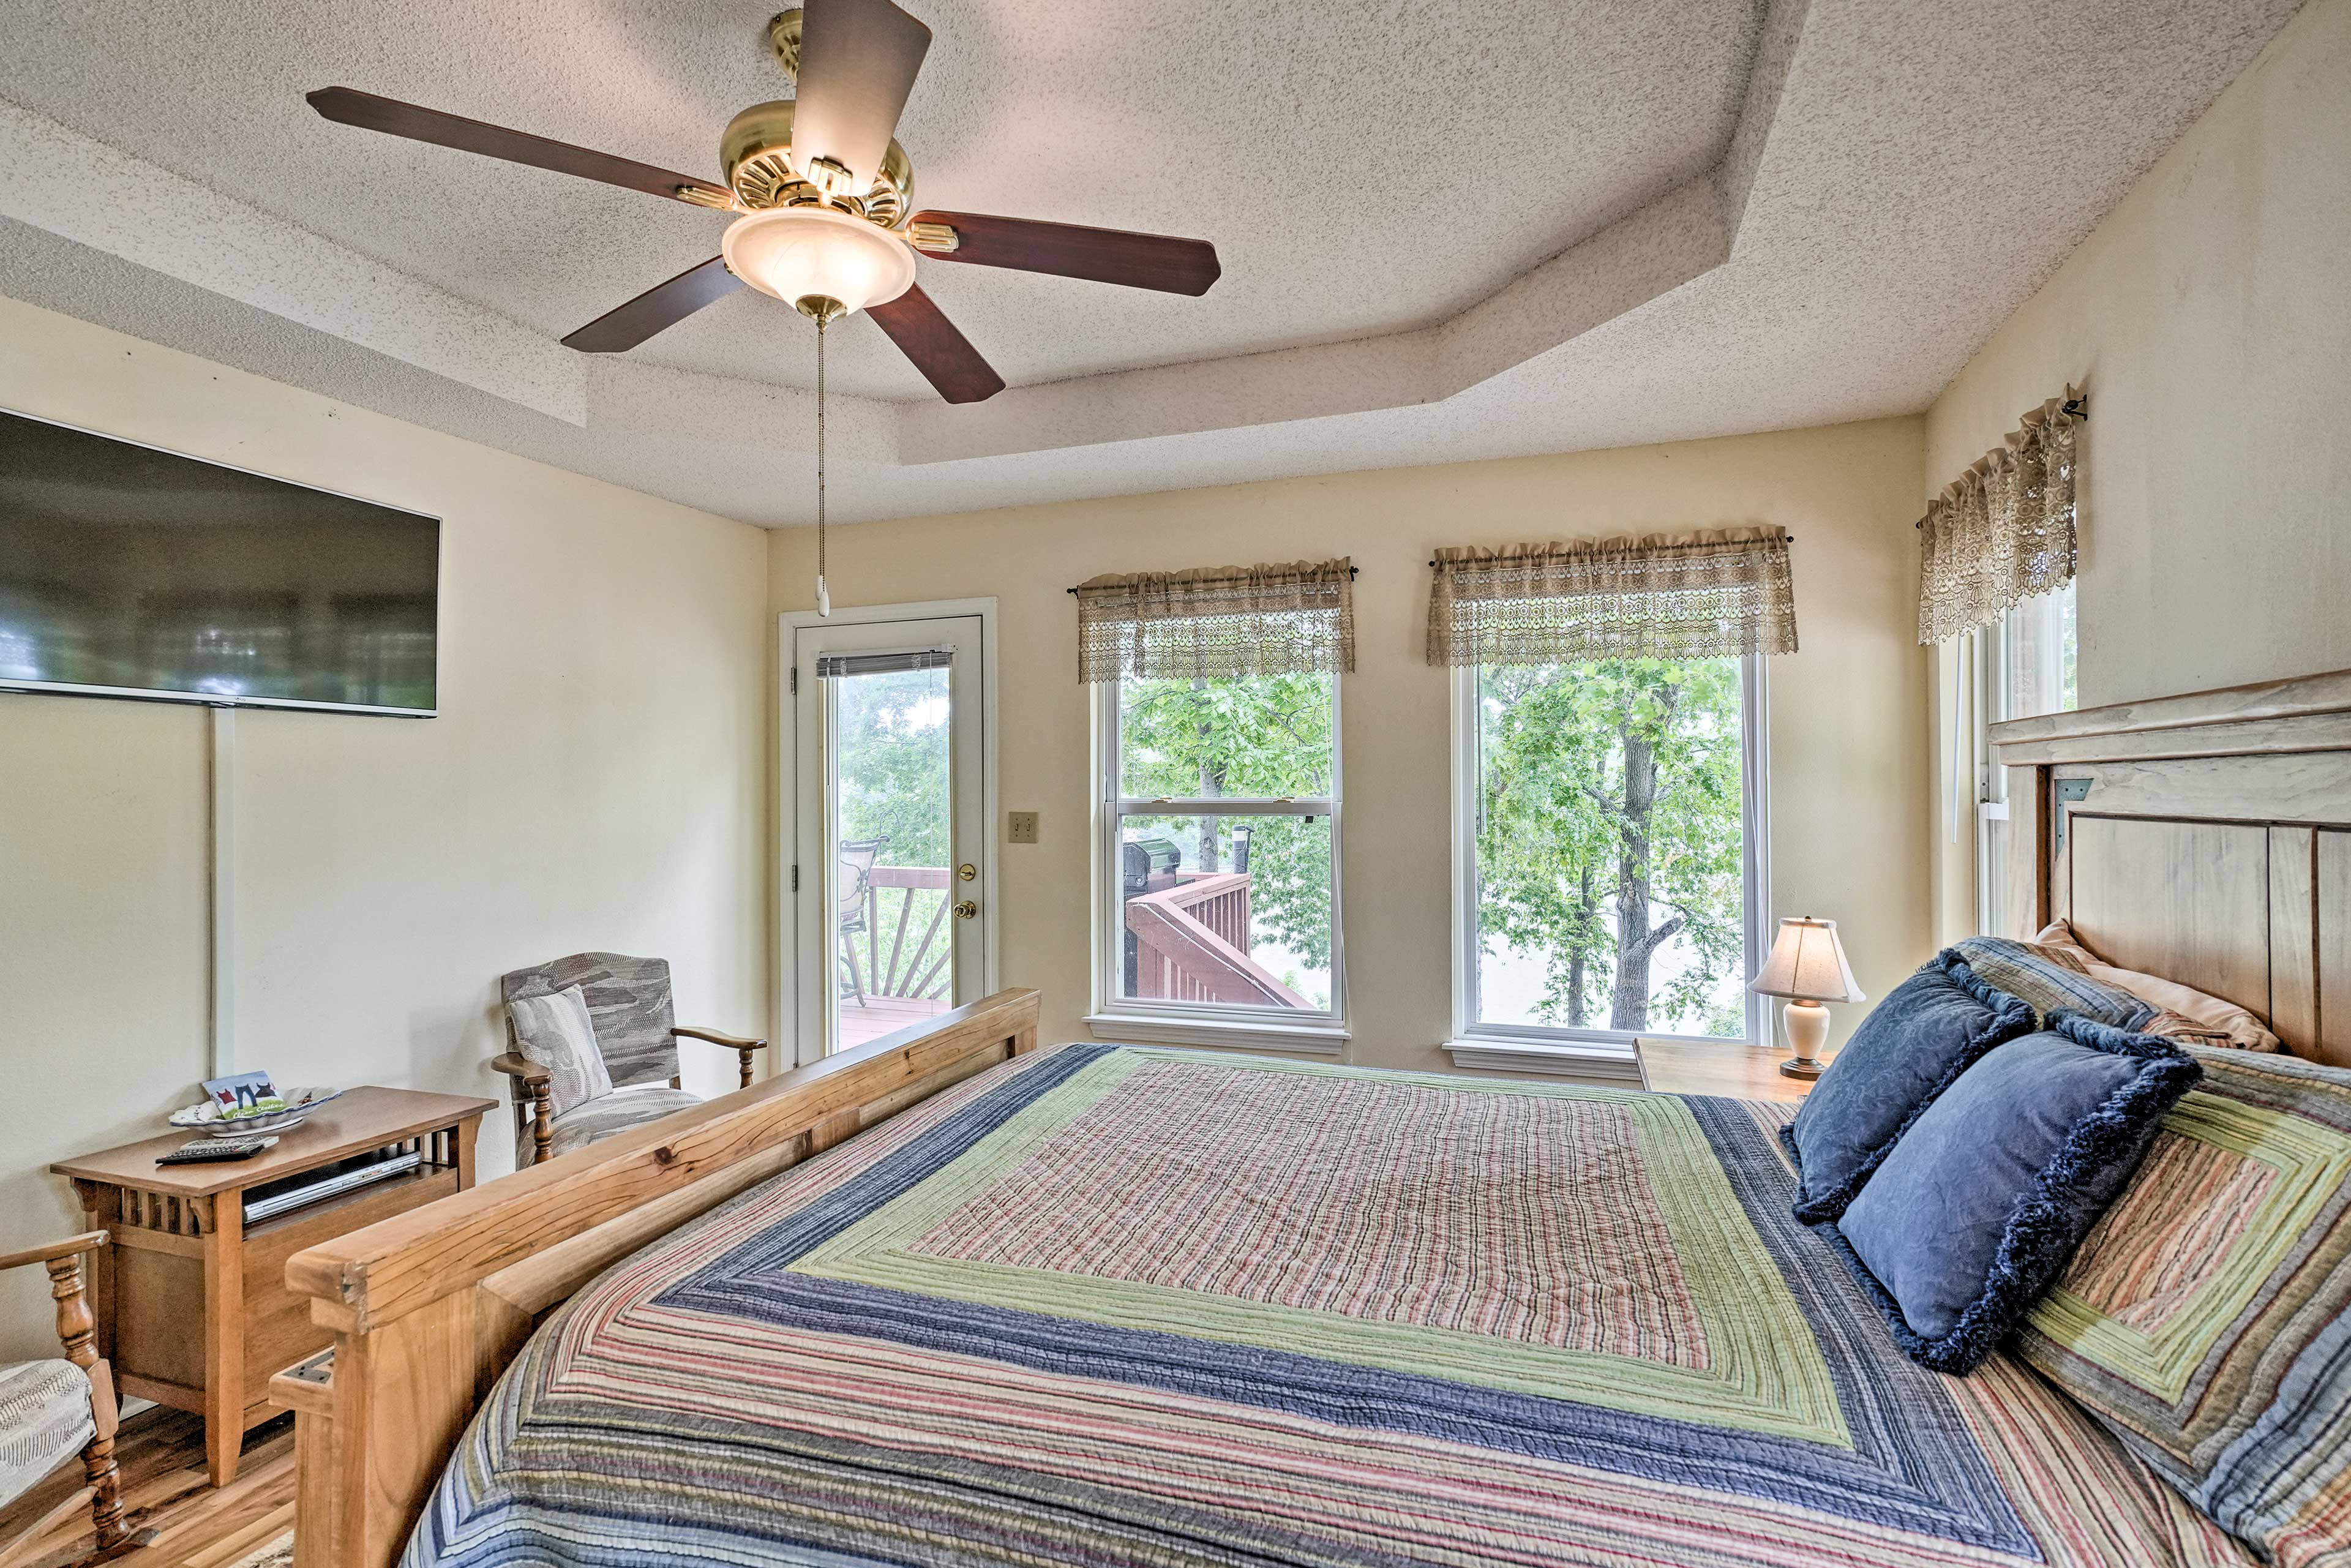 The master bedroom also features private deck access and a flat-screen TV.